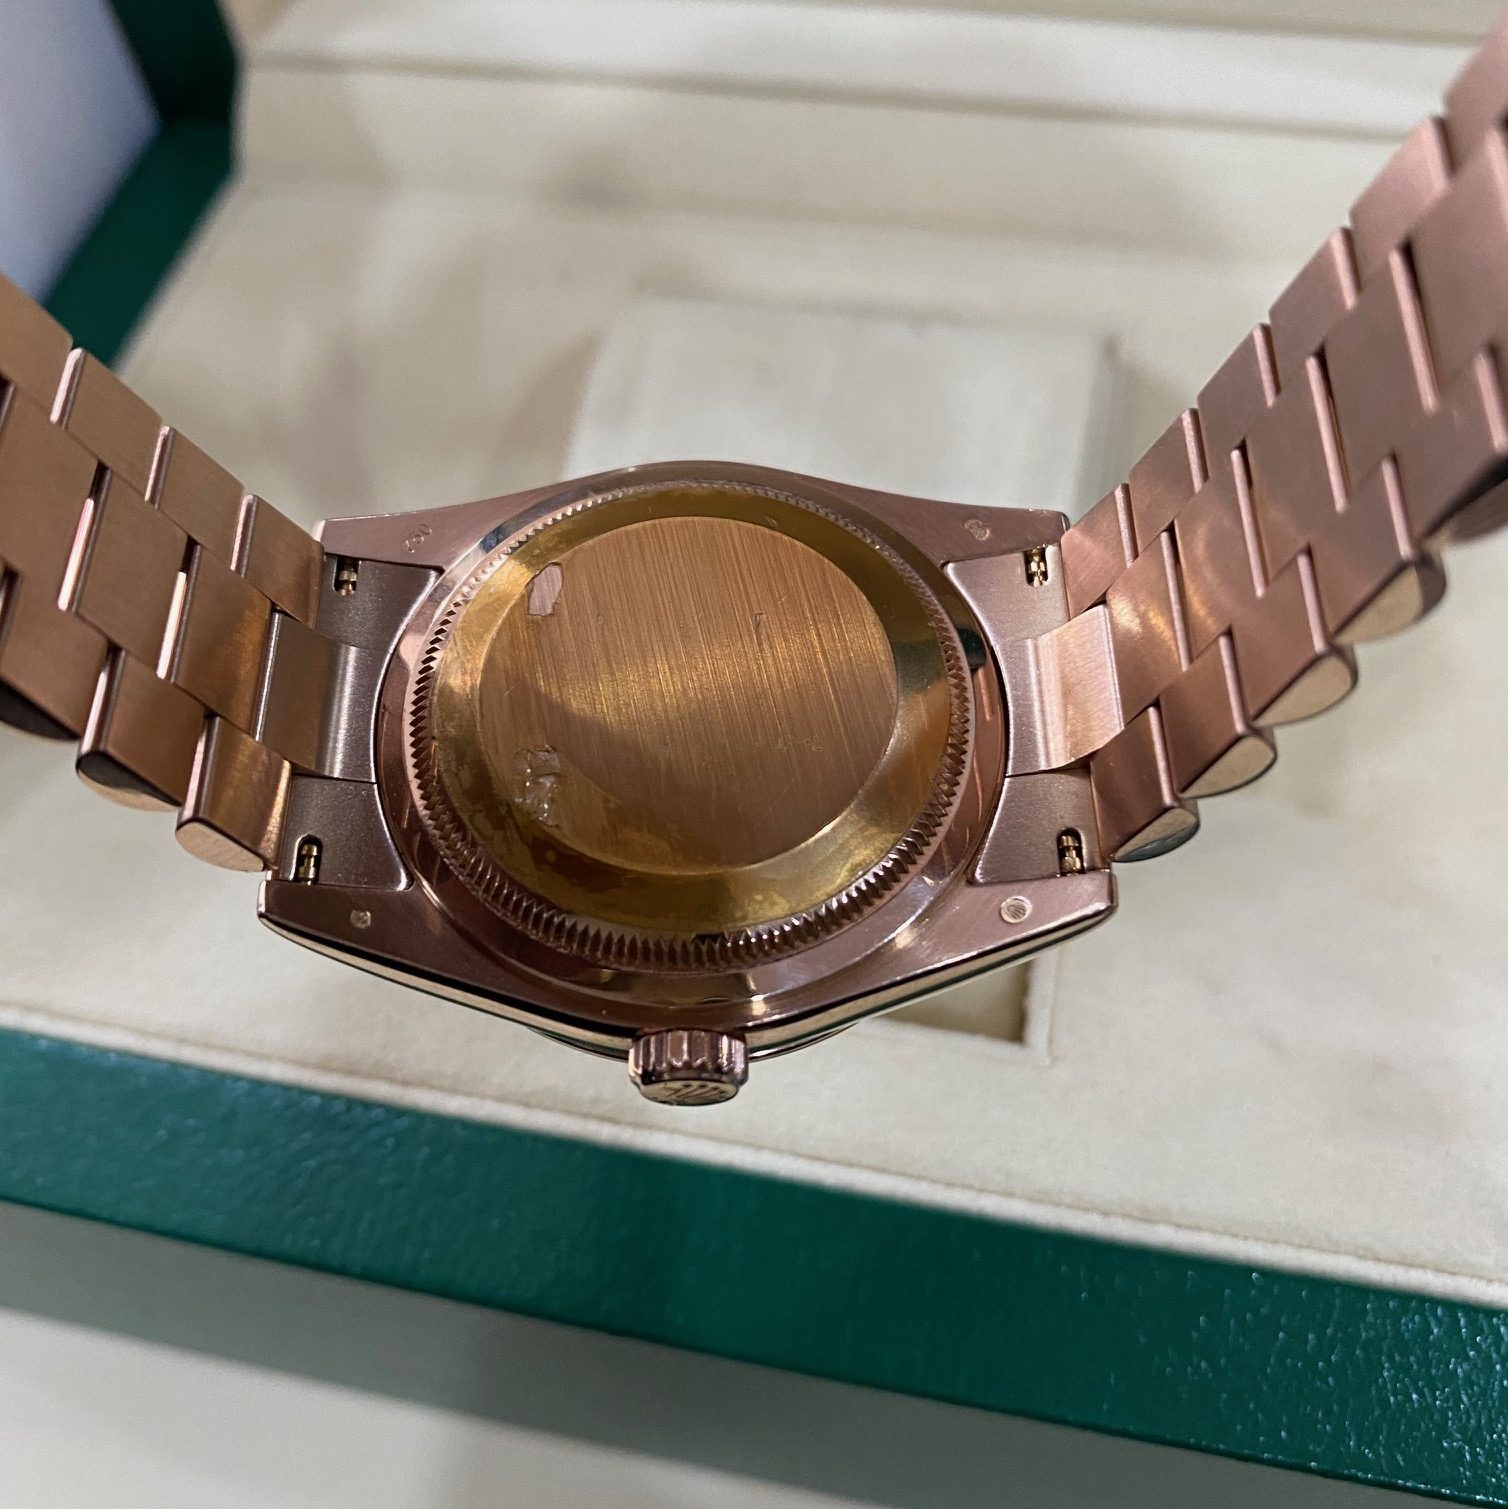 rolex-daydate-118235-mat-thien-thach-coc-hat-kim-cuong-size-36mm-3